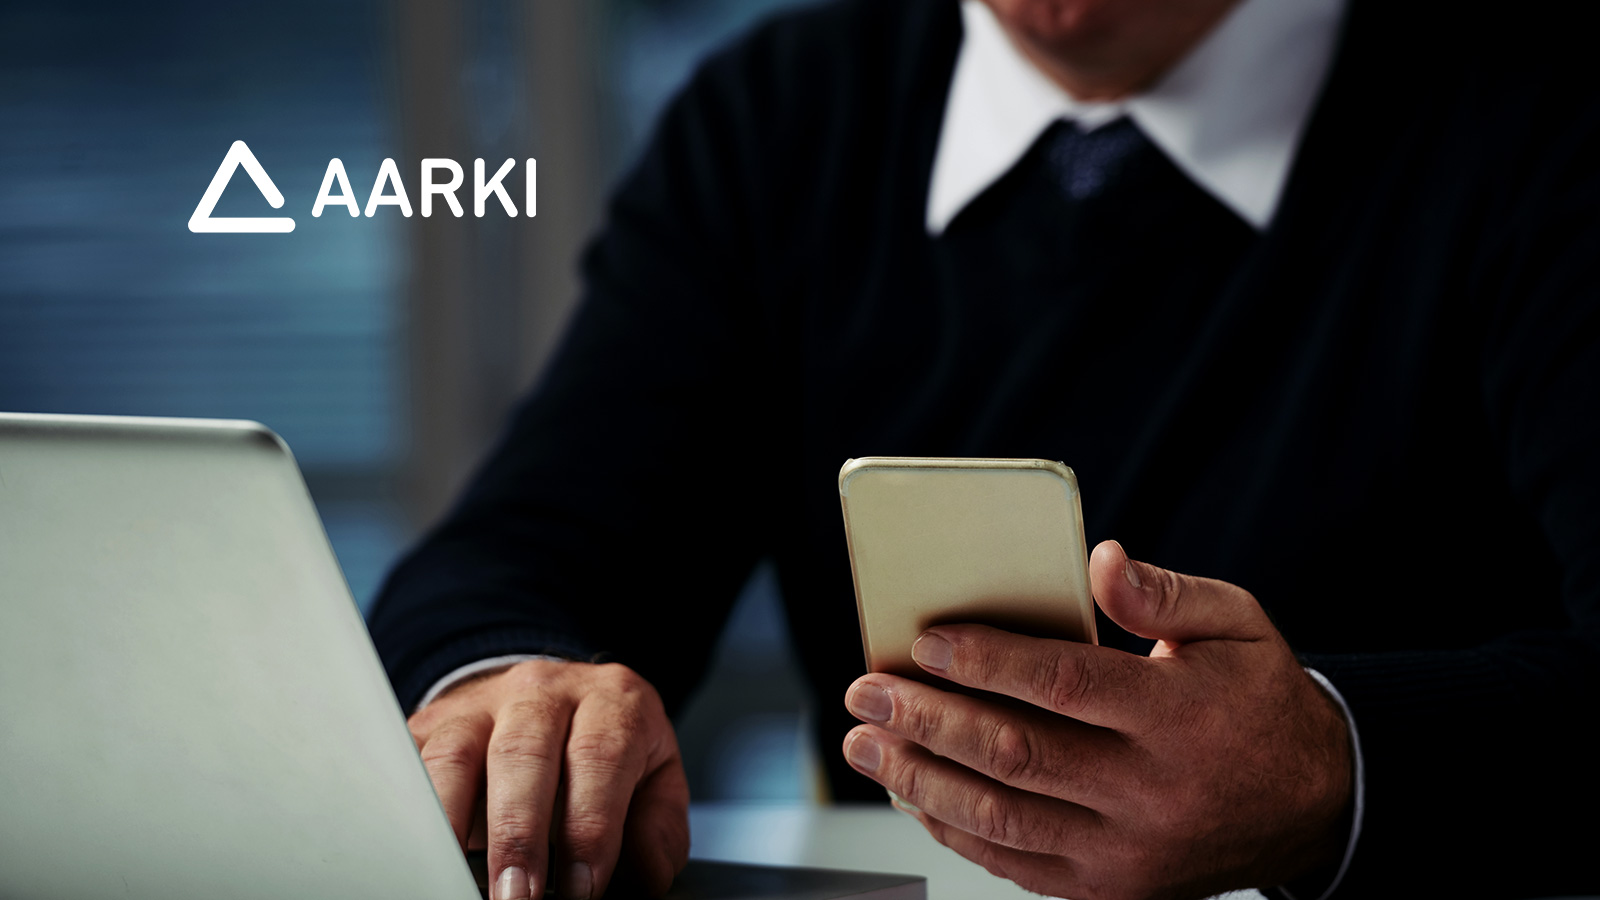 Mahor Technology Management: Aarki Announces Integrations With Major Audience Data